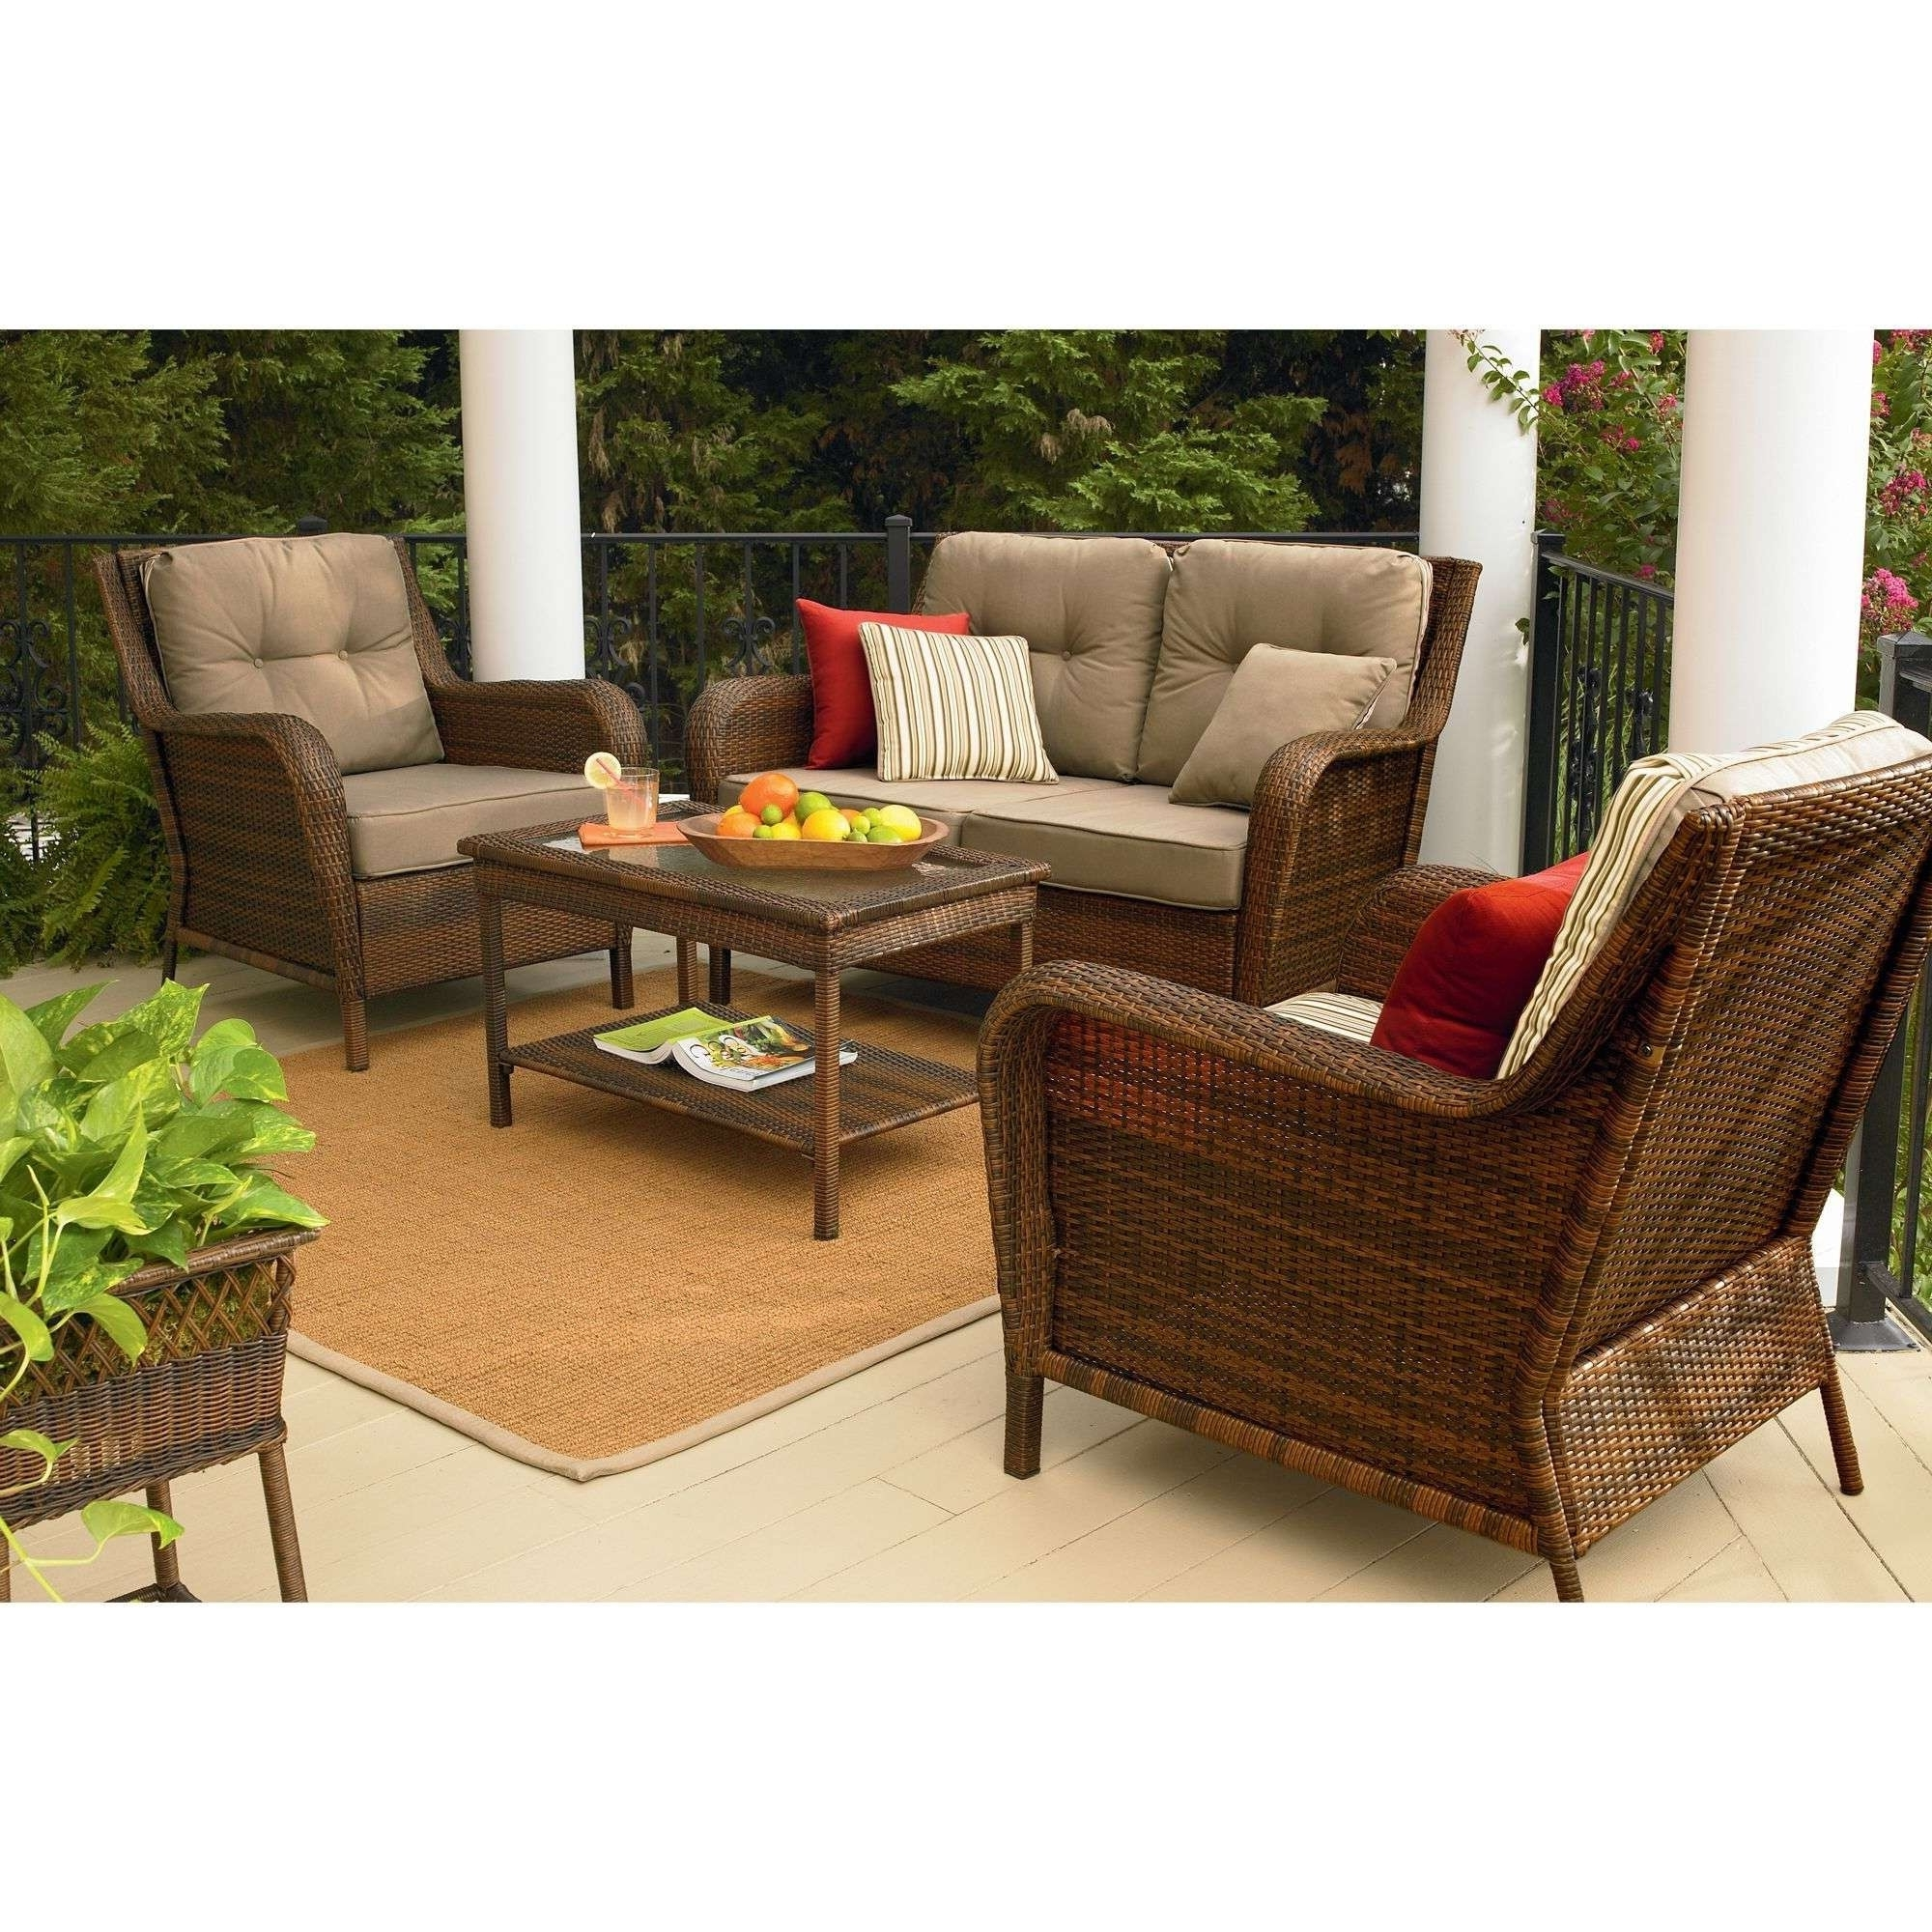 Sears Patio Furniture Comfortable Sears Wicker Furniture Sets Patio With Recent Patio Conversation Sets At Sears (View 14 of 15)